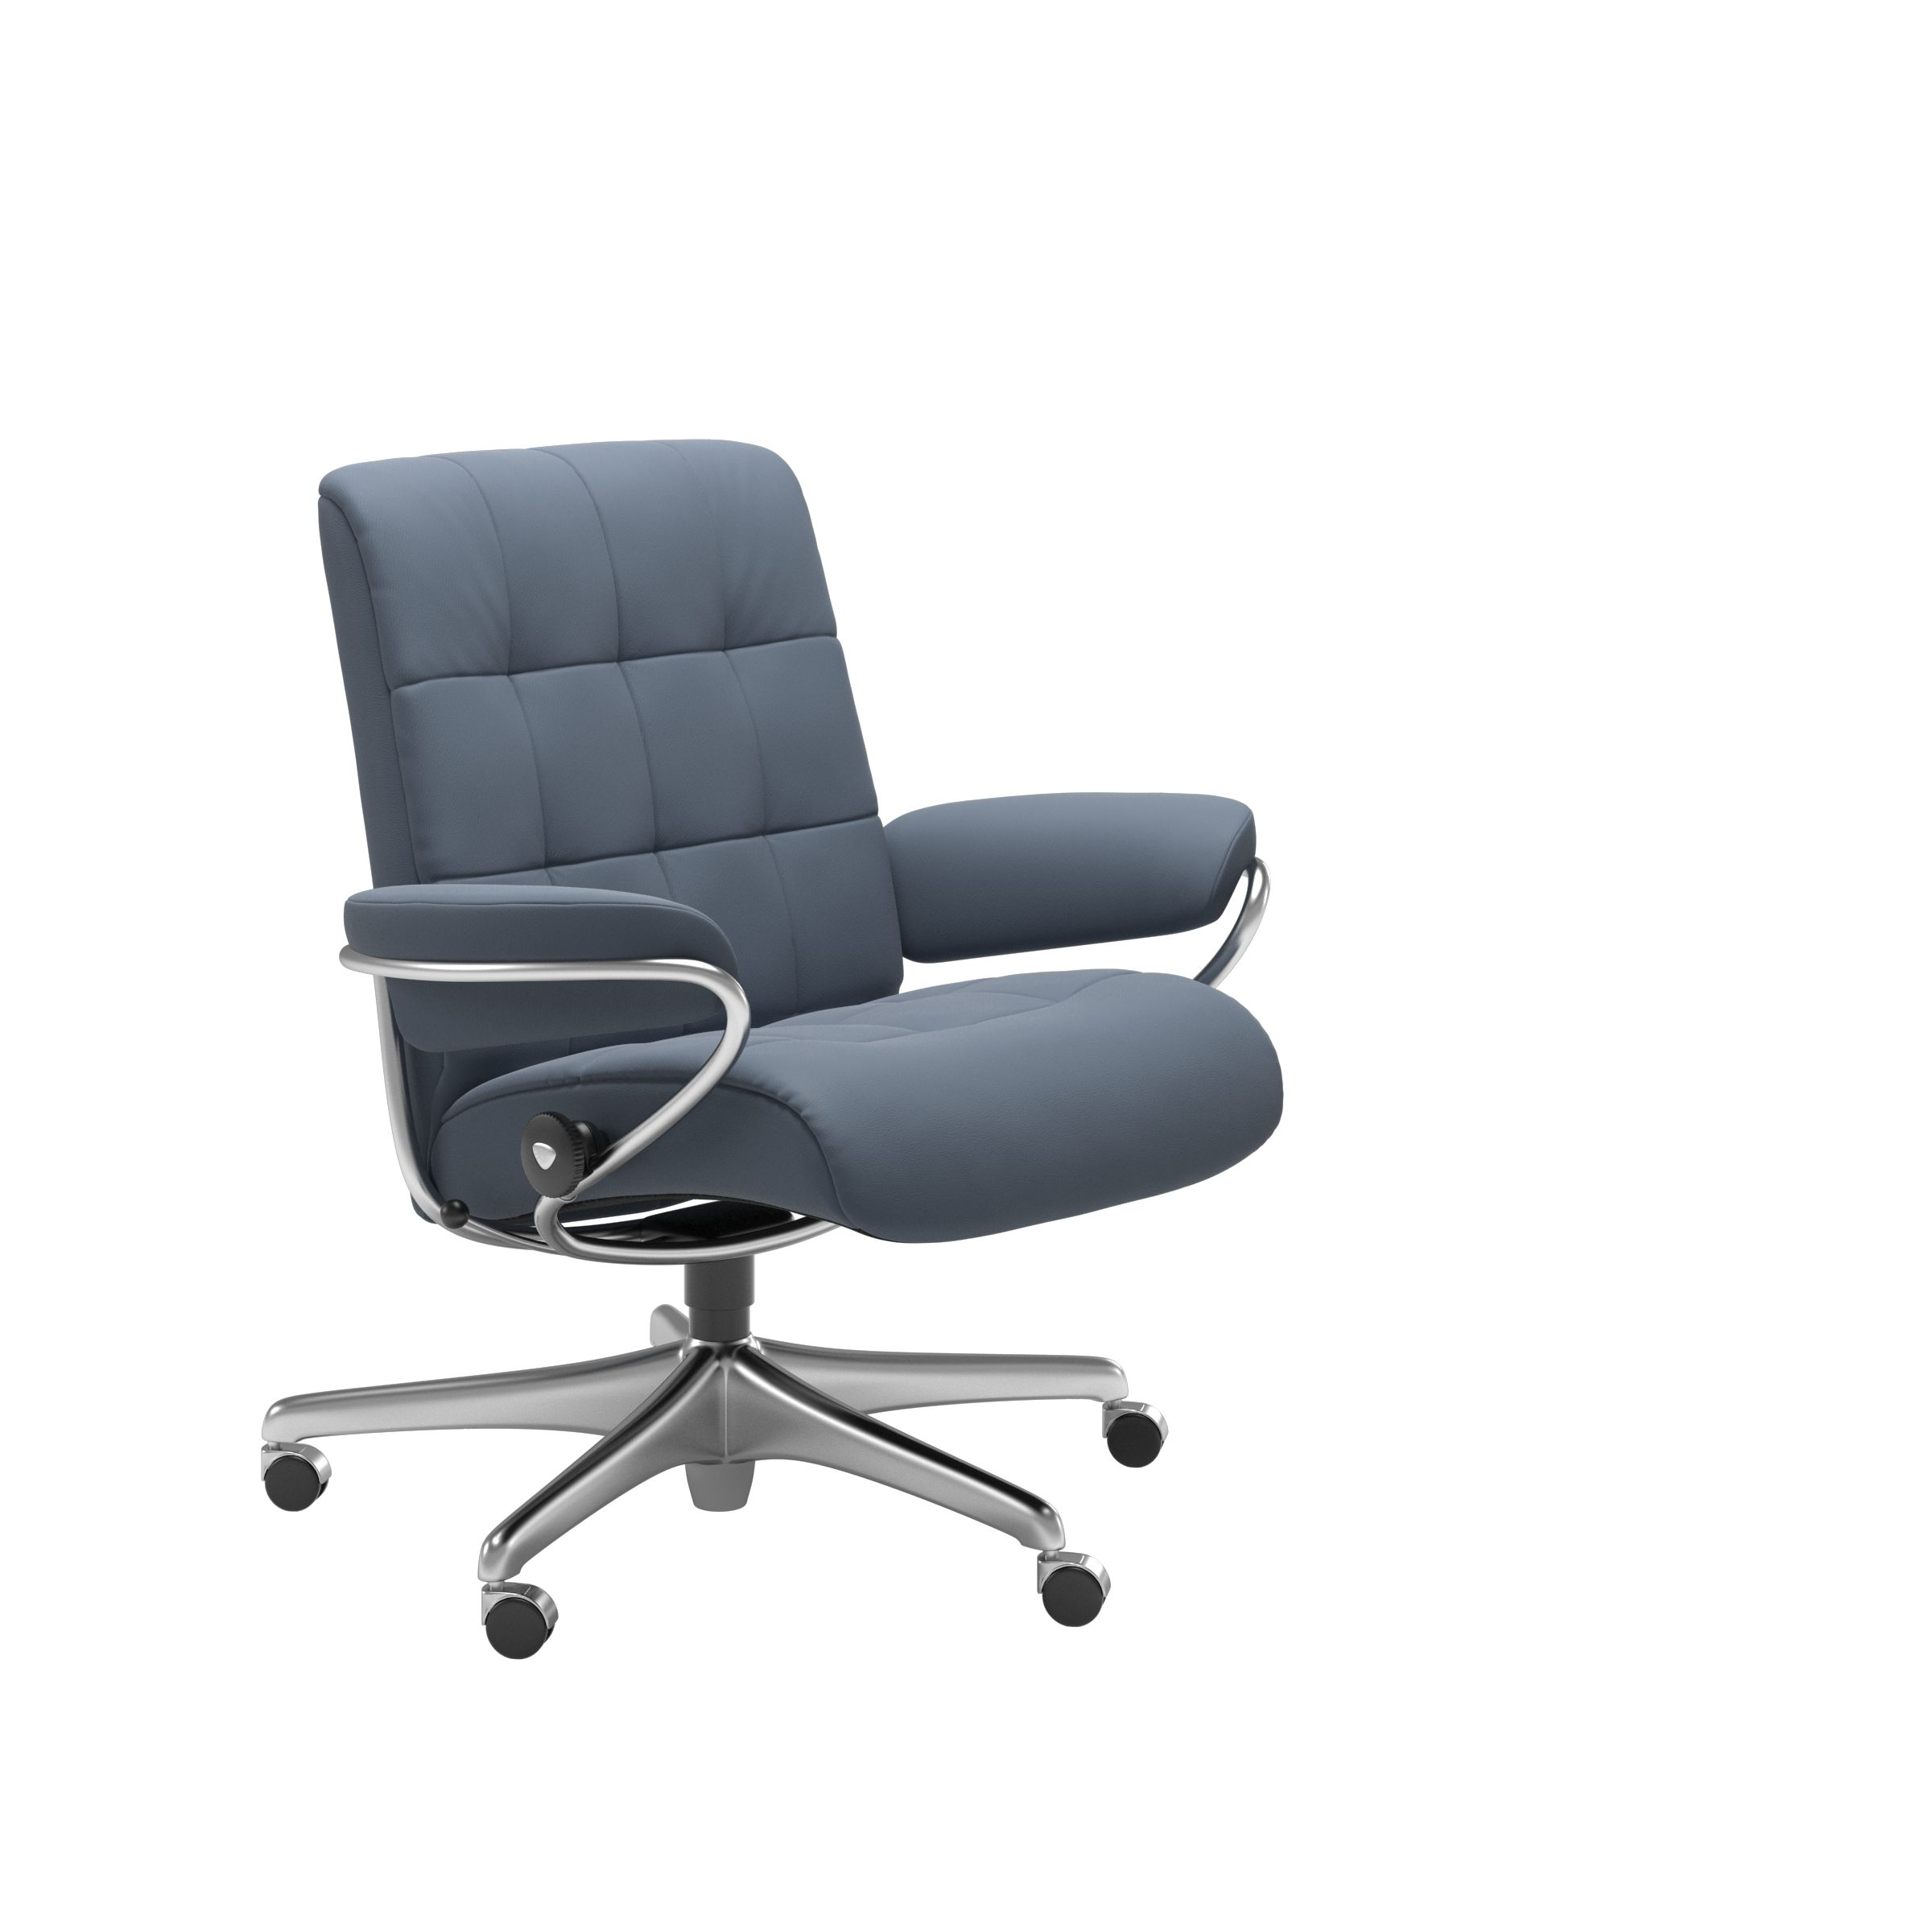 Stressless London Low Back Office Chair - Ambiente Modern Furniture